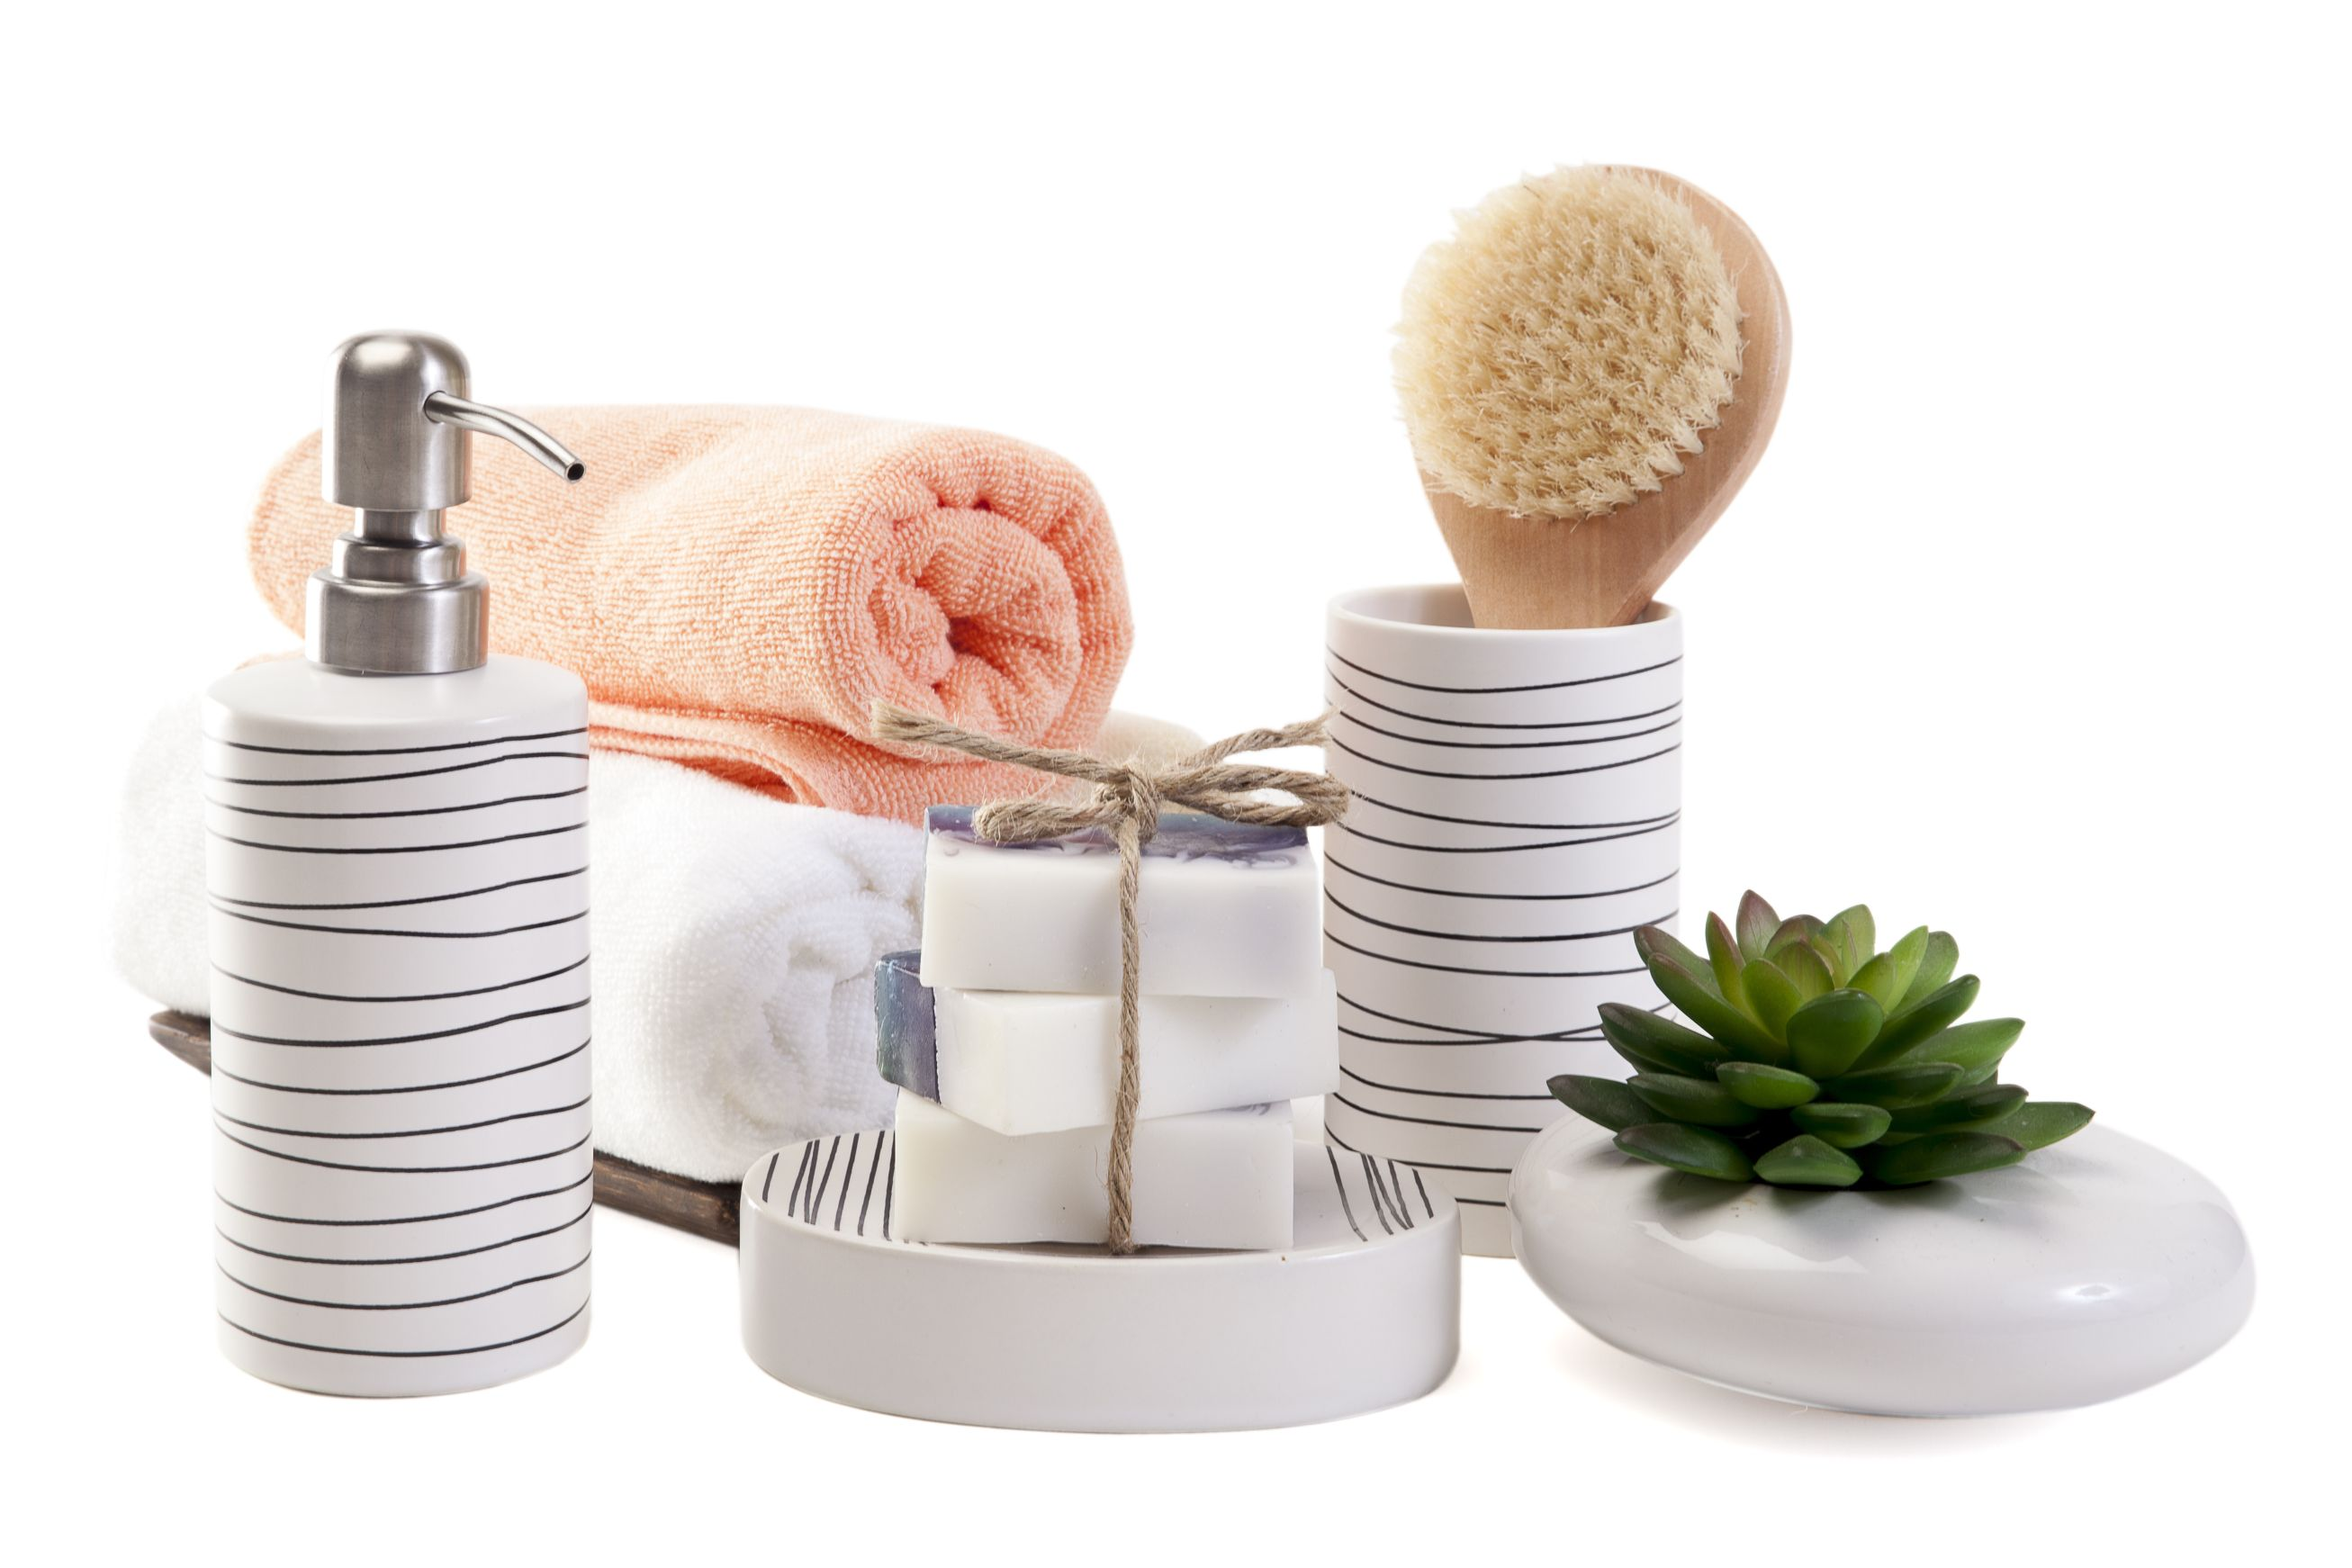 Want To Know How To Buy Bathroom Products? – Follow These Tips!